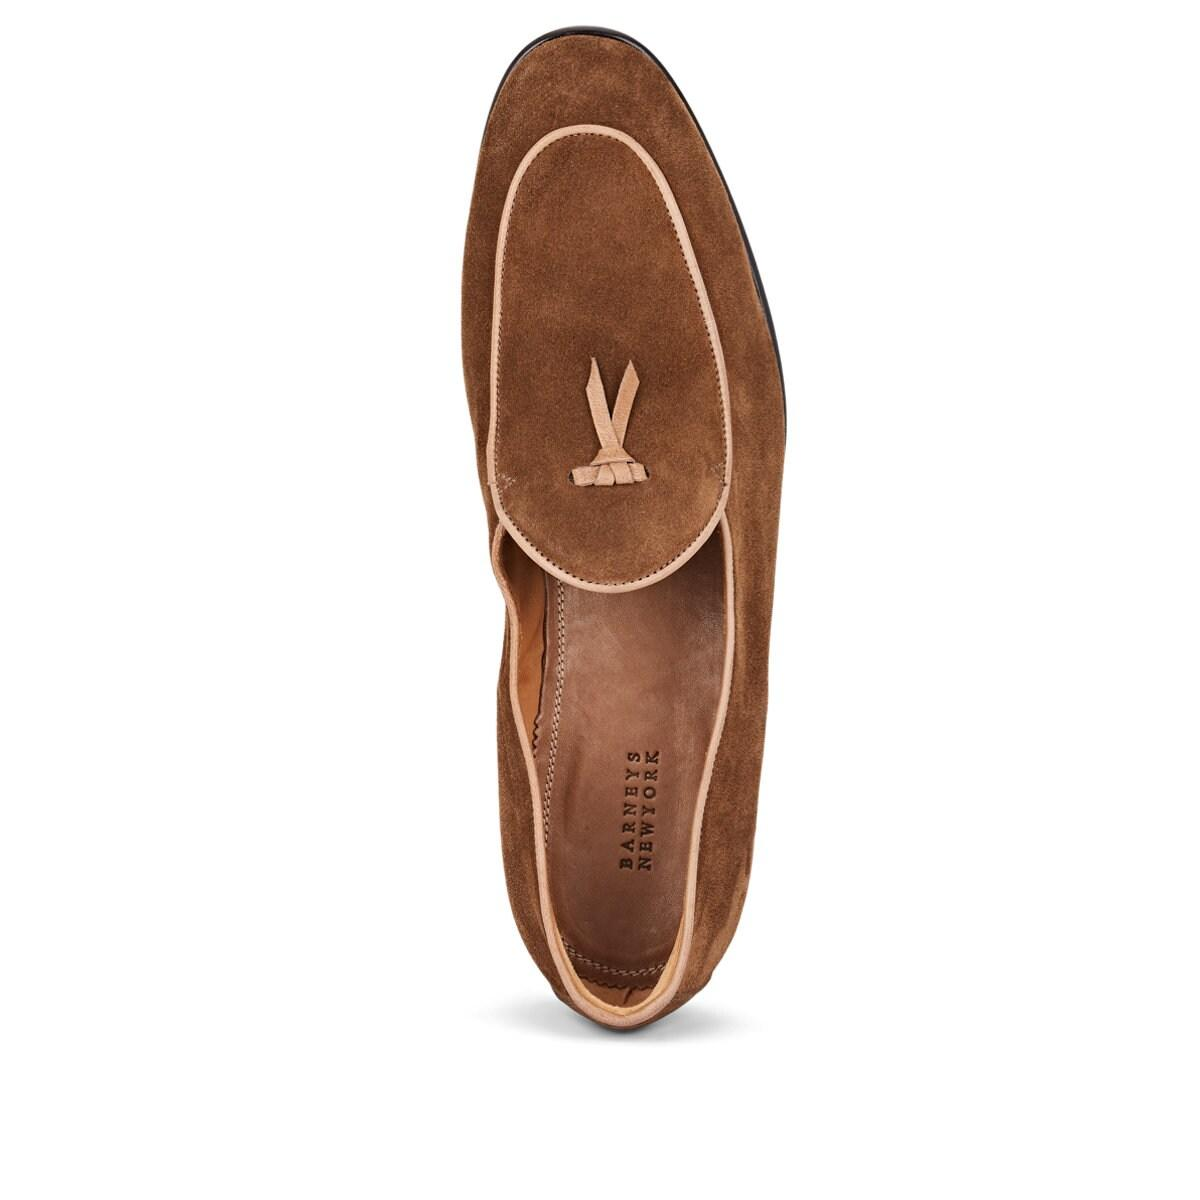 430af3c8a1350 Barneys New York - Brown Suede Belgian Loafers for Men - Lyst. View  fullscreen